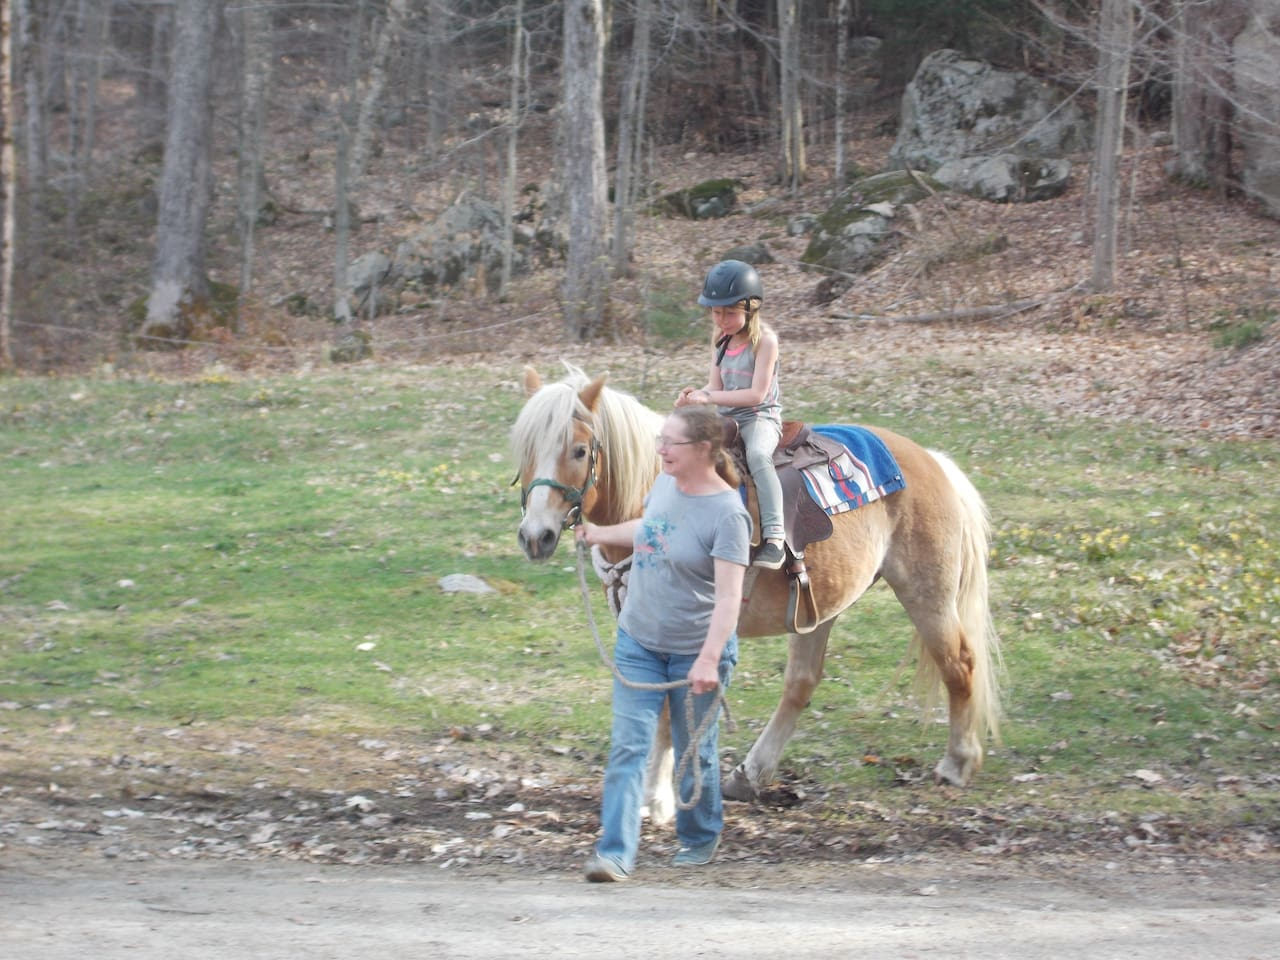 Experience the friendly horses!